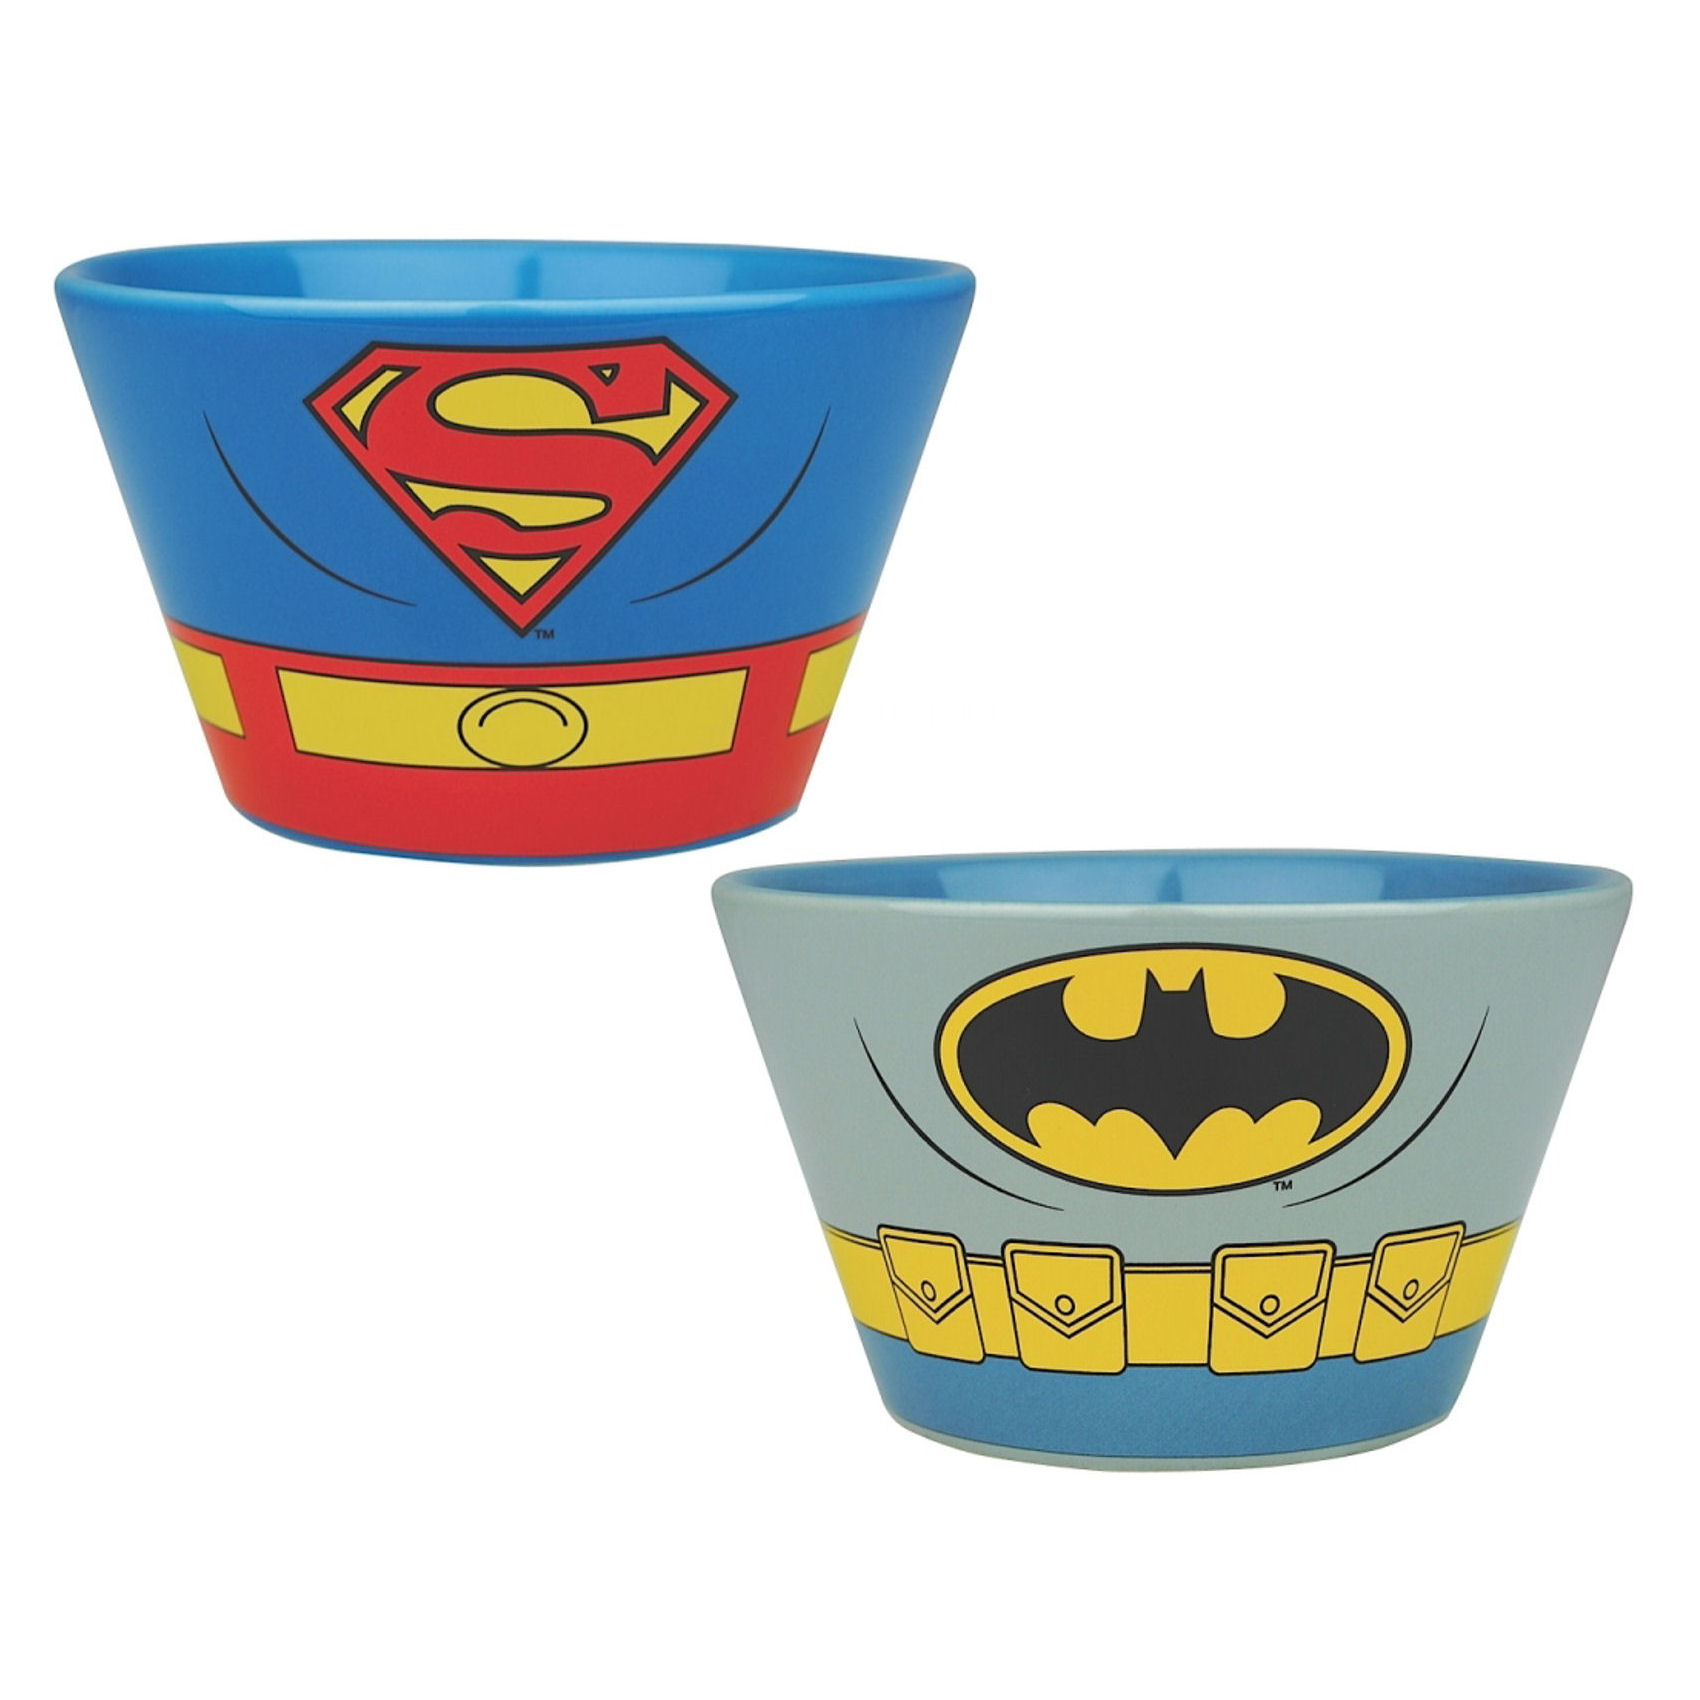 Set of 2 Ceramic Bowls - Batman & Superman Costume